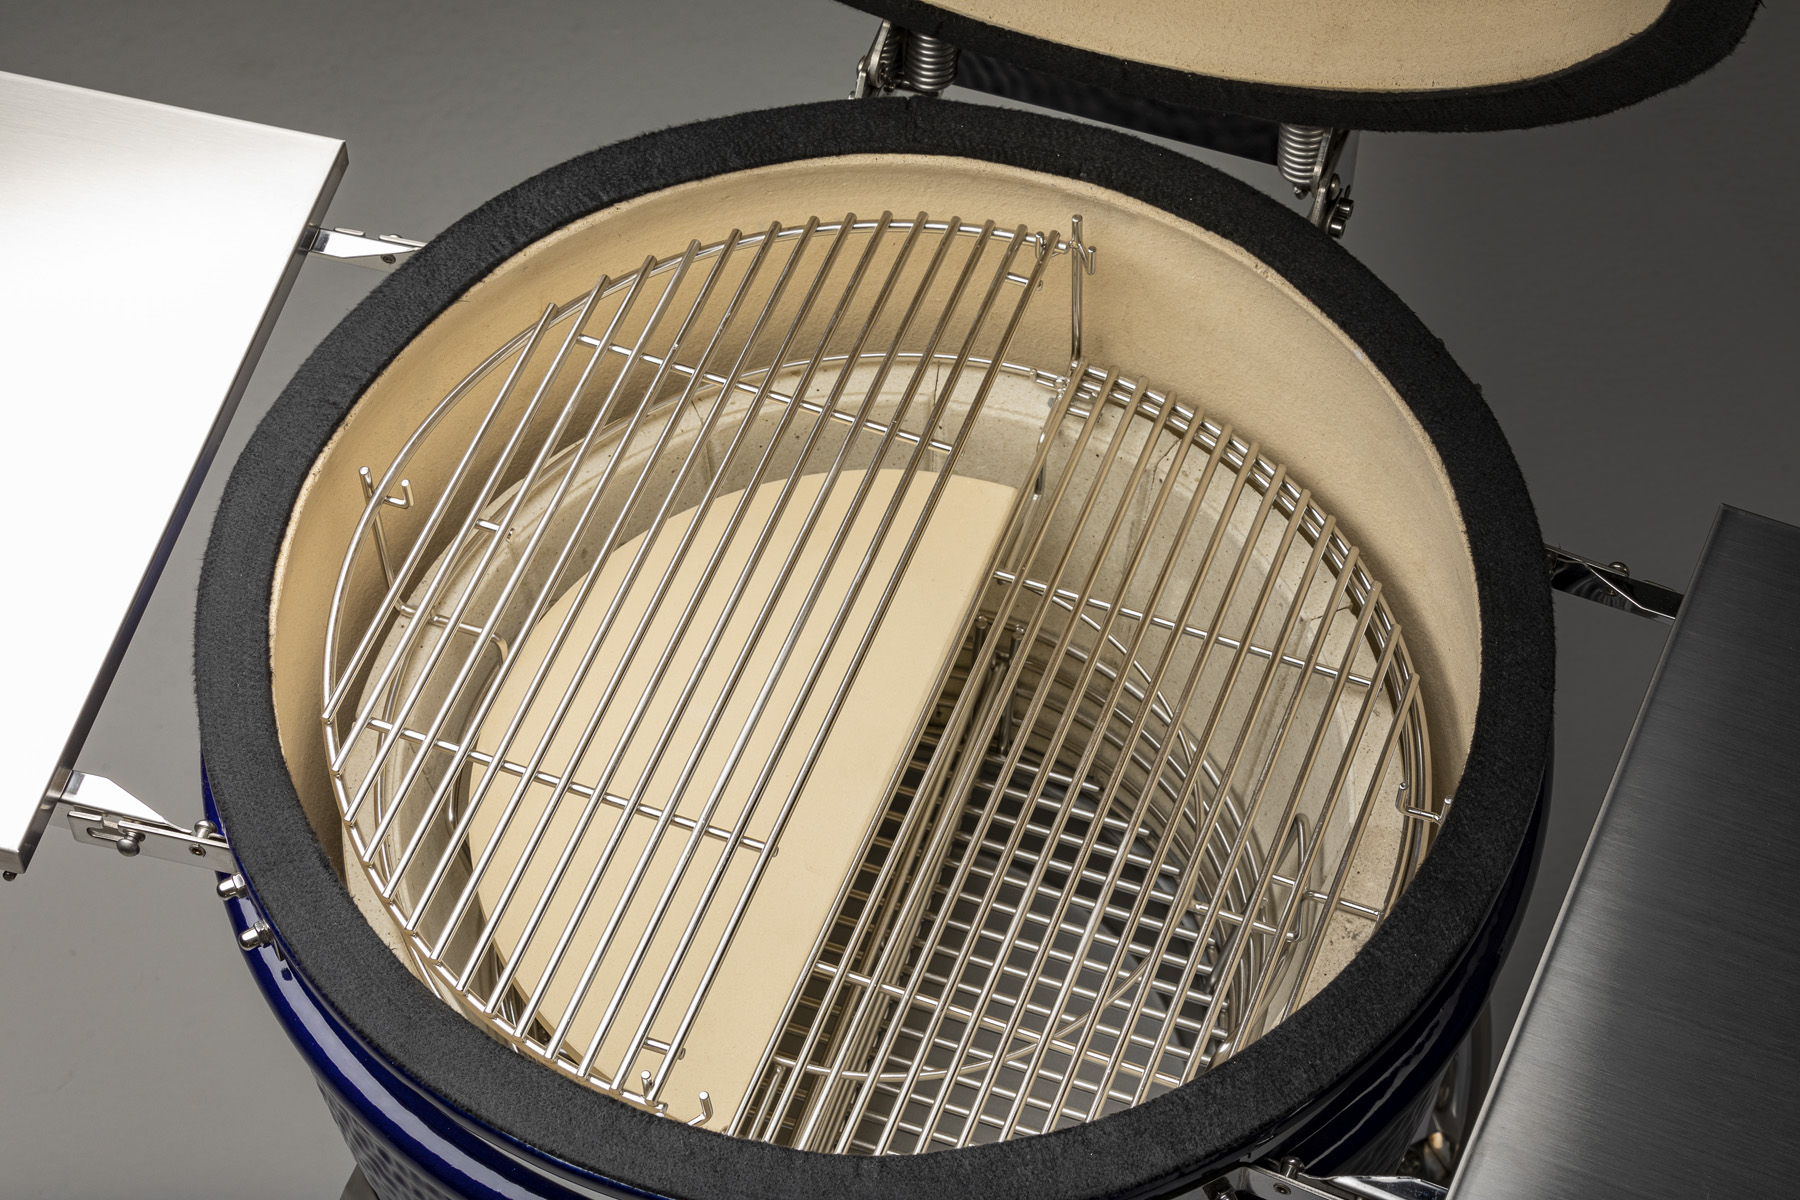 A Platinum Saffire grill is shown with the Multi-Grid, Two-Piece Ceramic Heat Deflector, Charcoal Basket and Ash Pan showing.